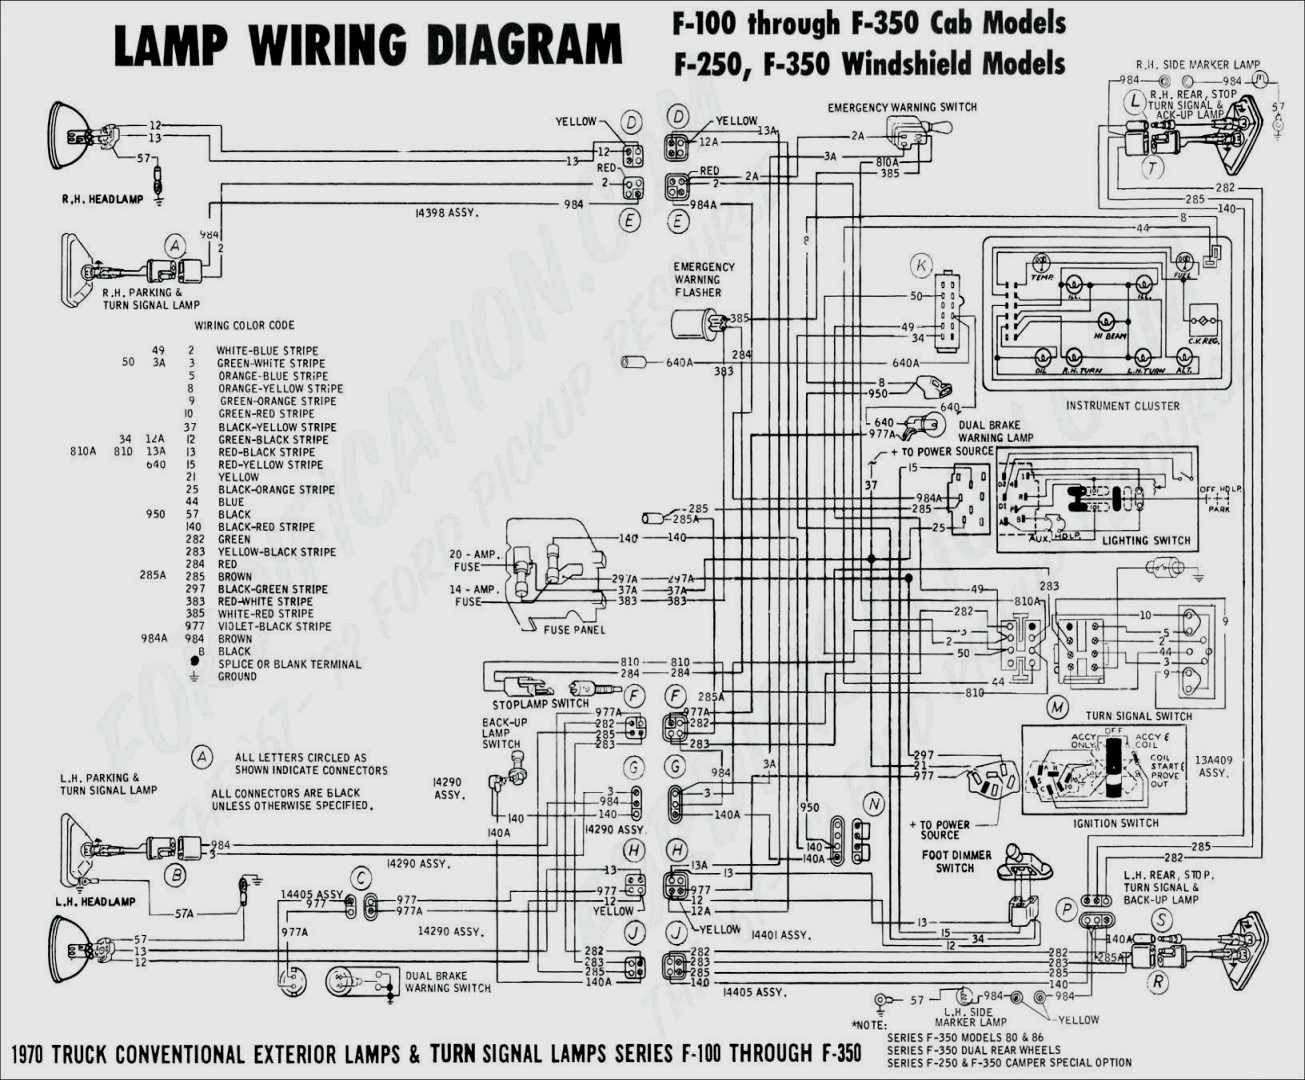 2012 Nissan Frontier Wiring Diagram - Trusted Wiring Diagram Online - 2012 Nissan Frontier Trailer Wiring Diagram